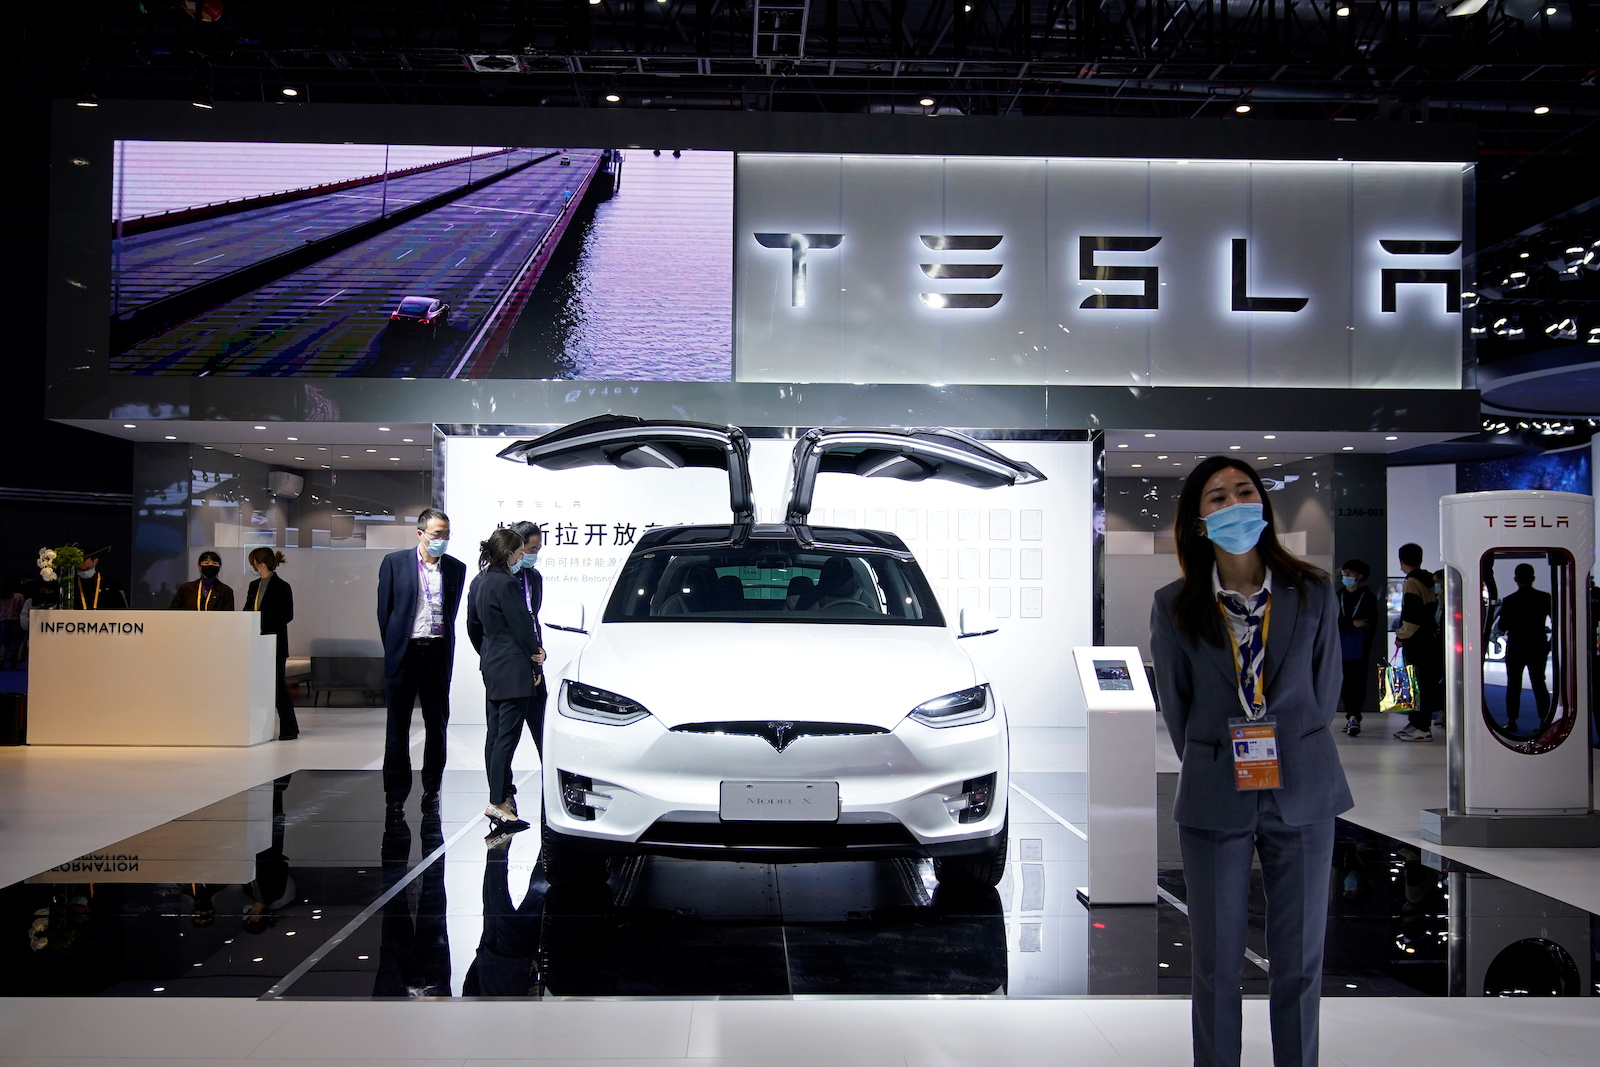 Tesla sign is seen at the third China International Import Expo (CIIE) in Shanghai, China November 5, 2020. REUTERS/Aly Song - RC2XWJ9JXLB4